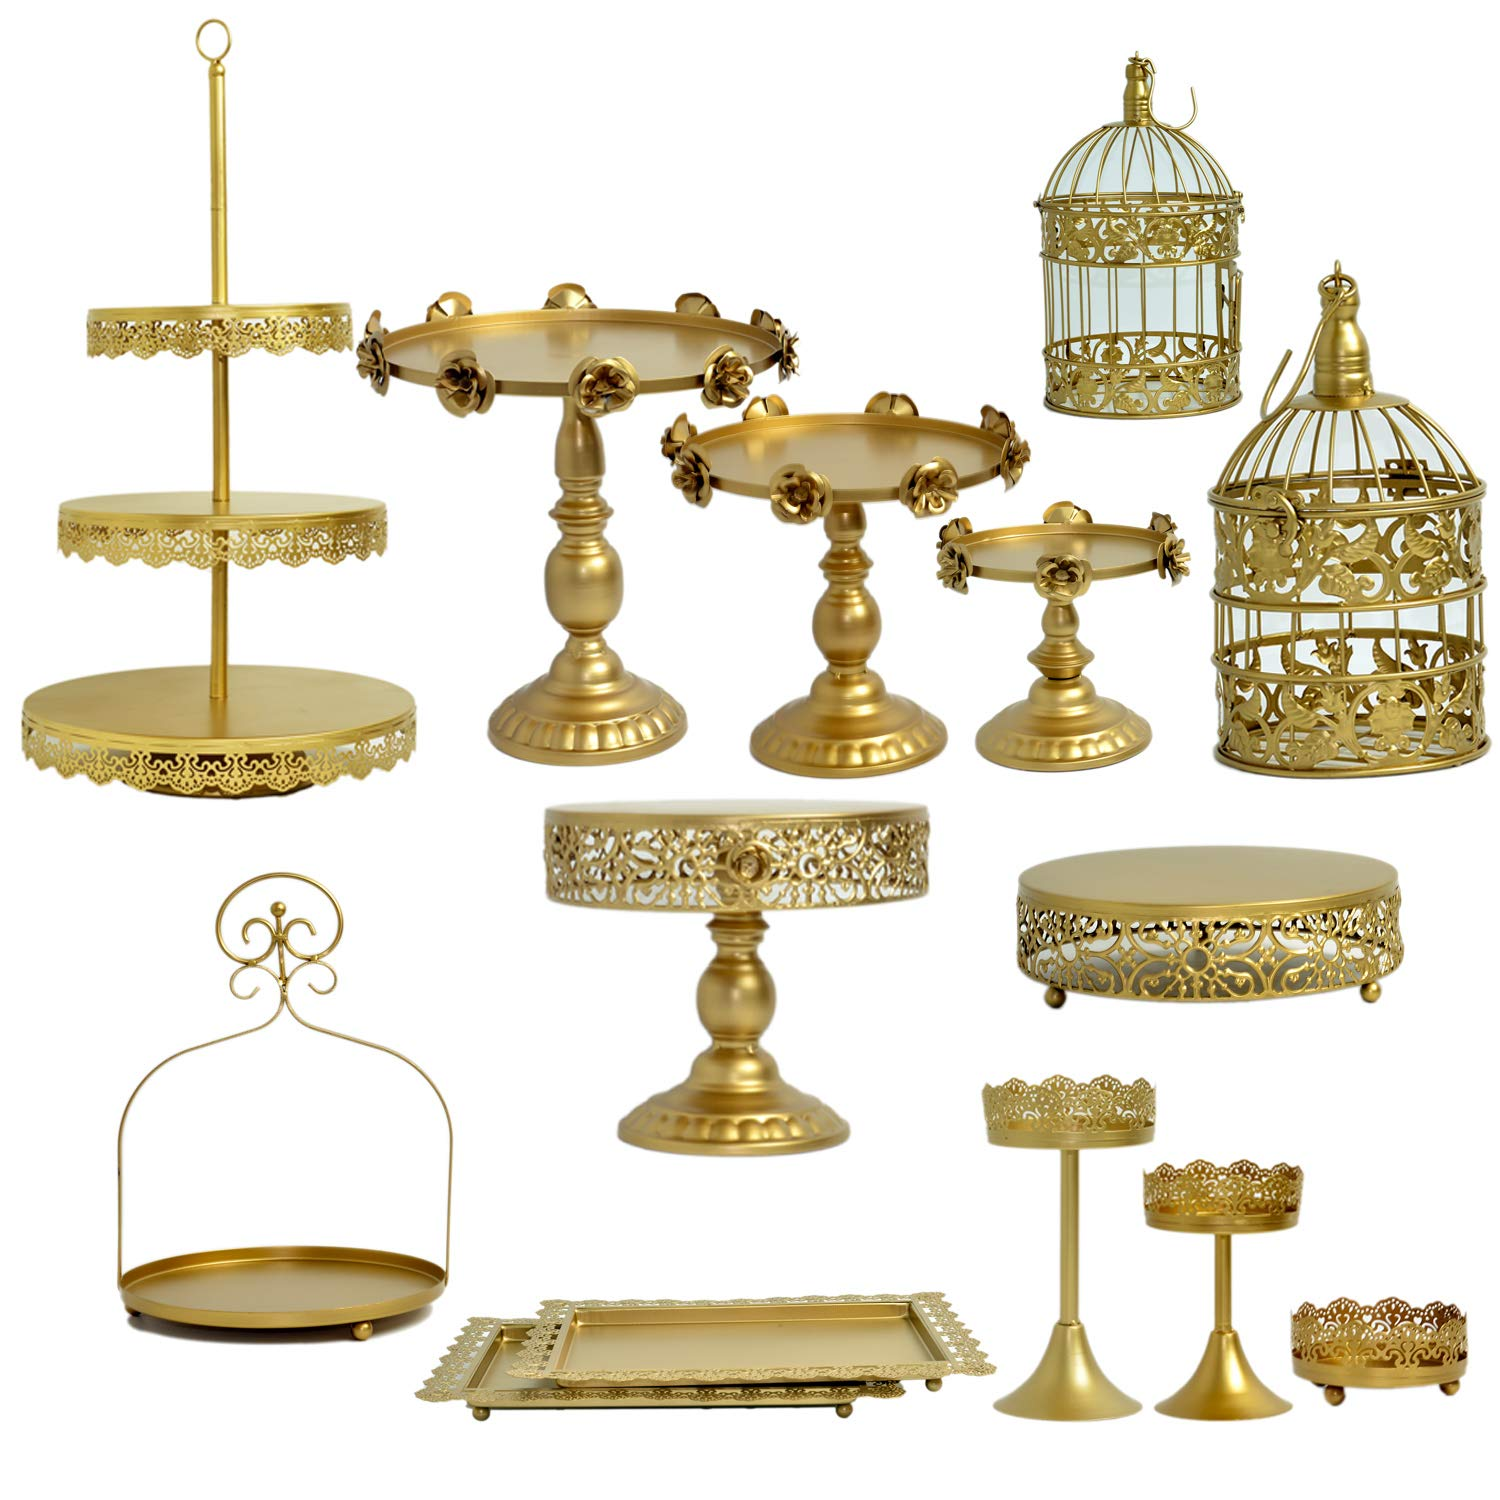 Proshopping 14 Set Antique Metal Cake Stand, Classical Round Cupcake Holder, Cake Plate Tray, Cookie Pedestal Display Tower, for Wedding Birthday Party, with Crystals Pendants and Beads, Gold